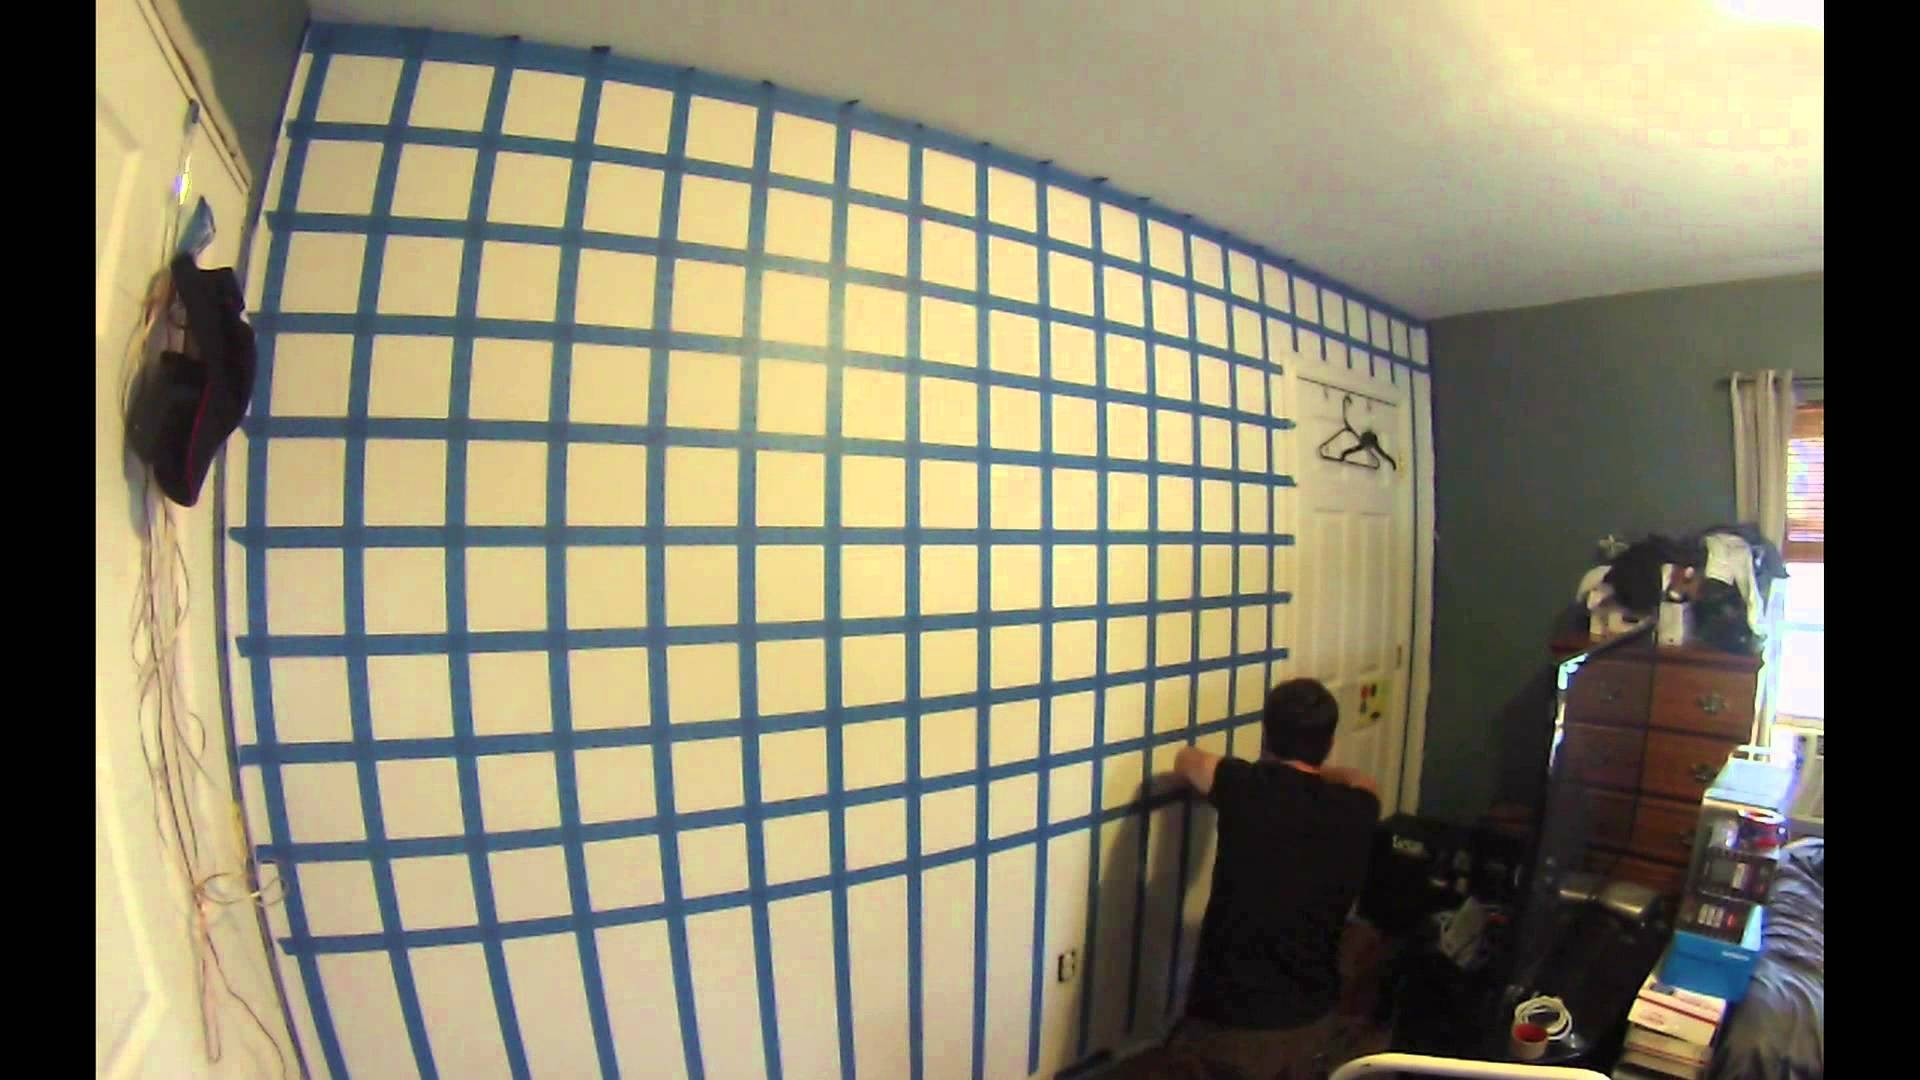 Hd] 3D Cube Wall Painting Time Lapse – Youtube Pertaining To Newest Cubes 3D Wall Art (View 7 of 20)